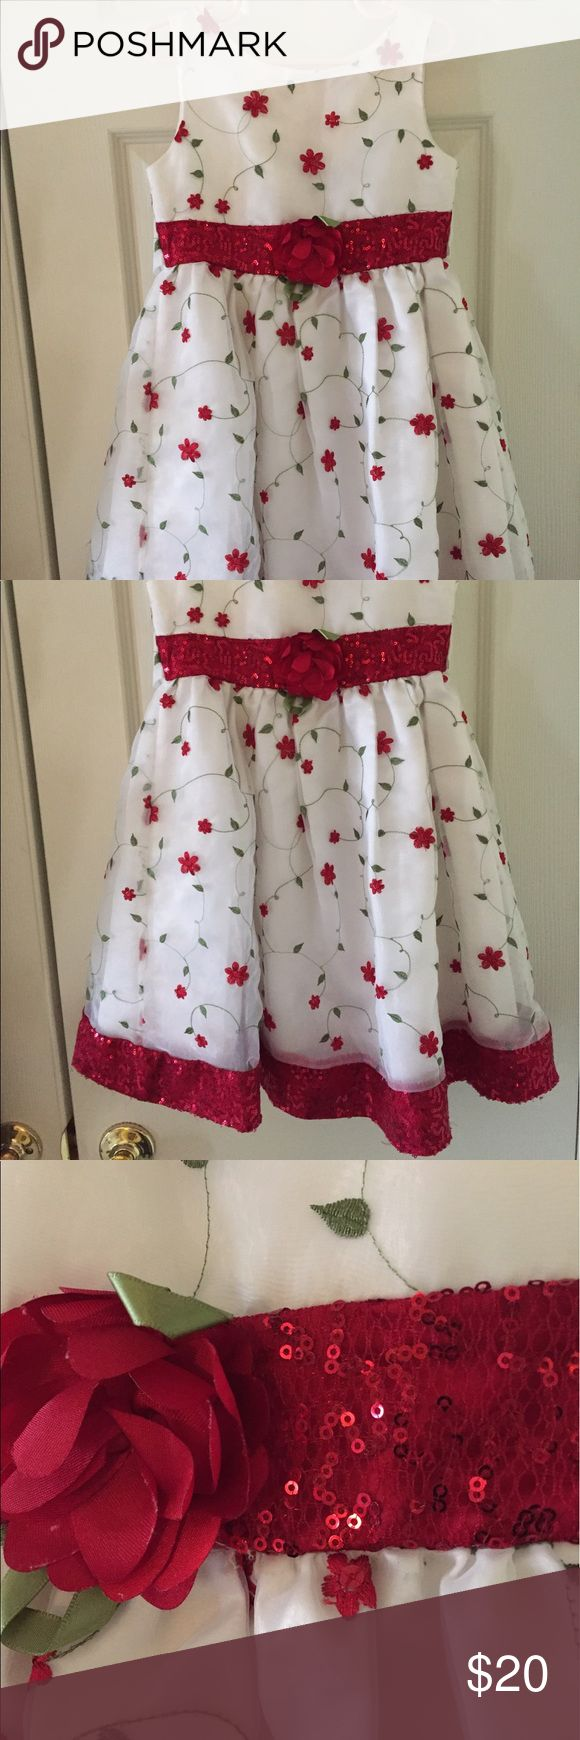 Red white and green floral sequin dress Pretty flowers embroidered in chiffon fabric. Sequined hem and tieback. Matching velour shrug Youngland Dresses Formal